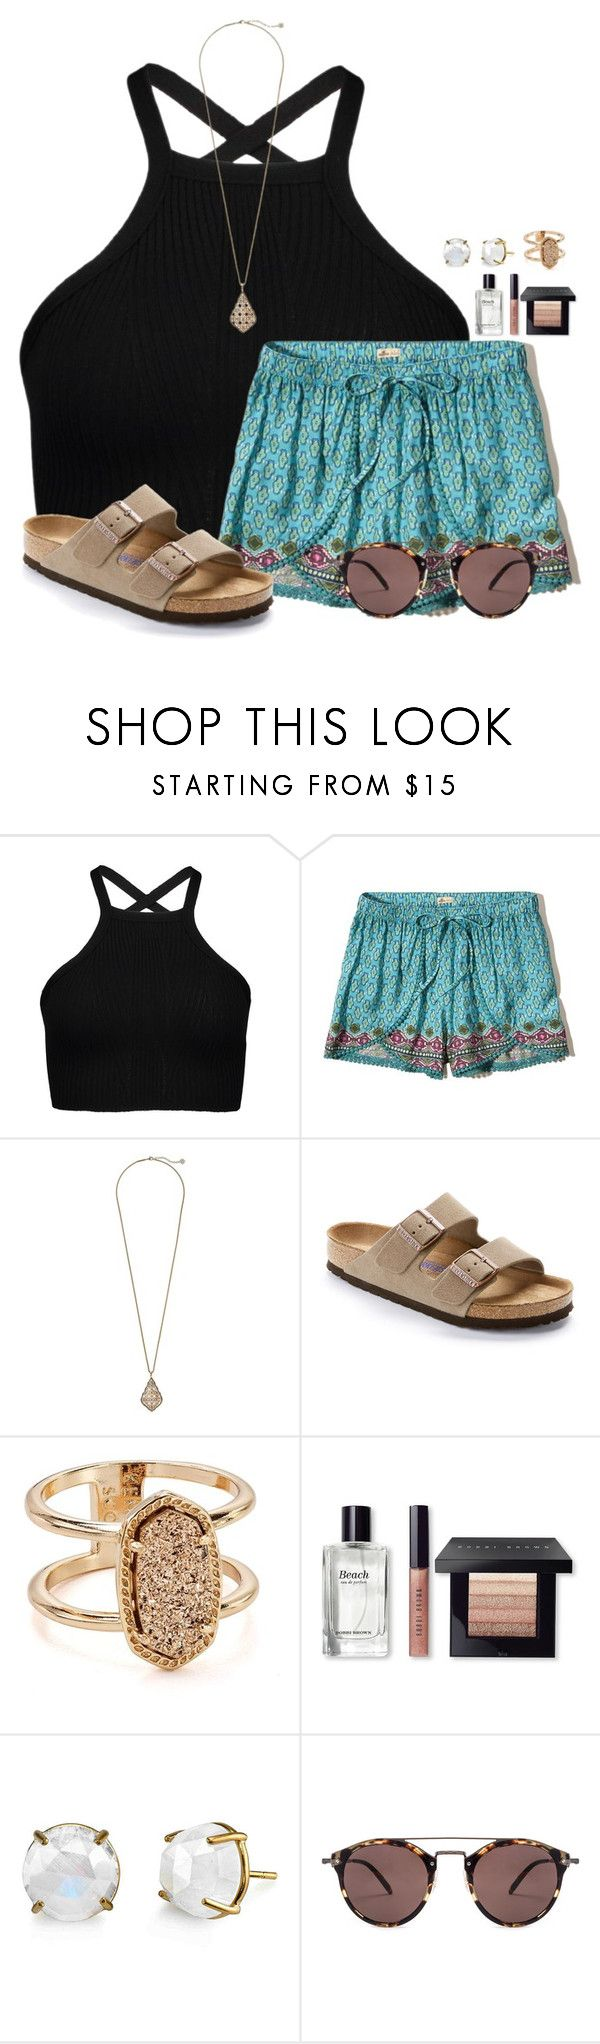 """""""~Boho~"""" by victoriaann34 on Polyvore featuring Hollister Co., Kendra Scott, Birkenstock, Bobbi Brown Cosmetics, Irene Neuwirth and Oliver Peoples"""